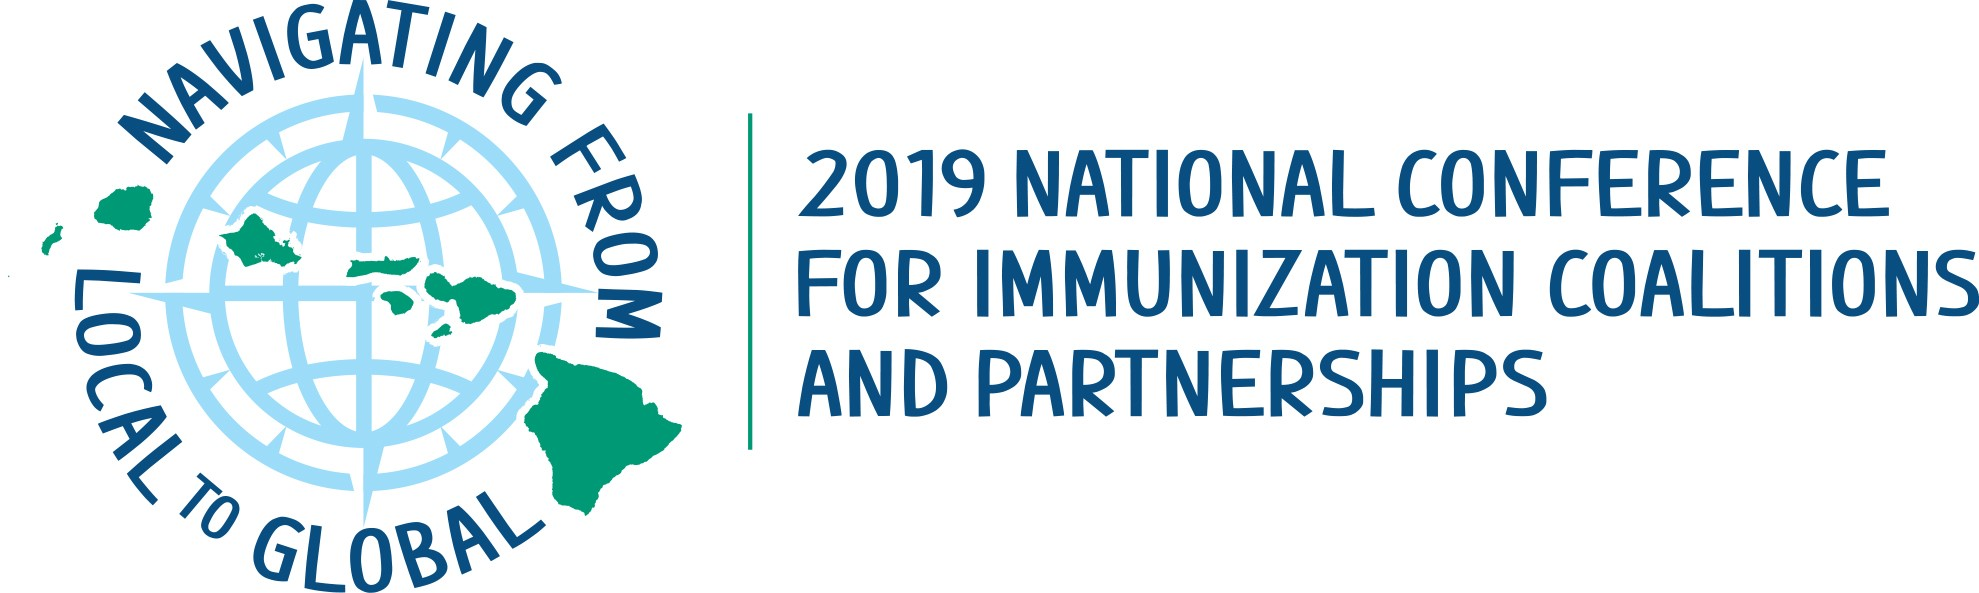 2019 National Conference for Immunization Coalitions and Partnerships